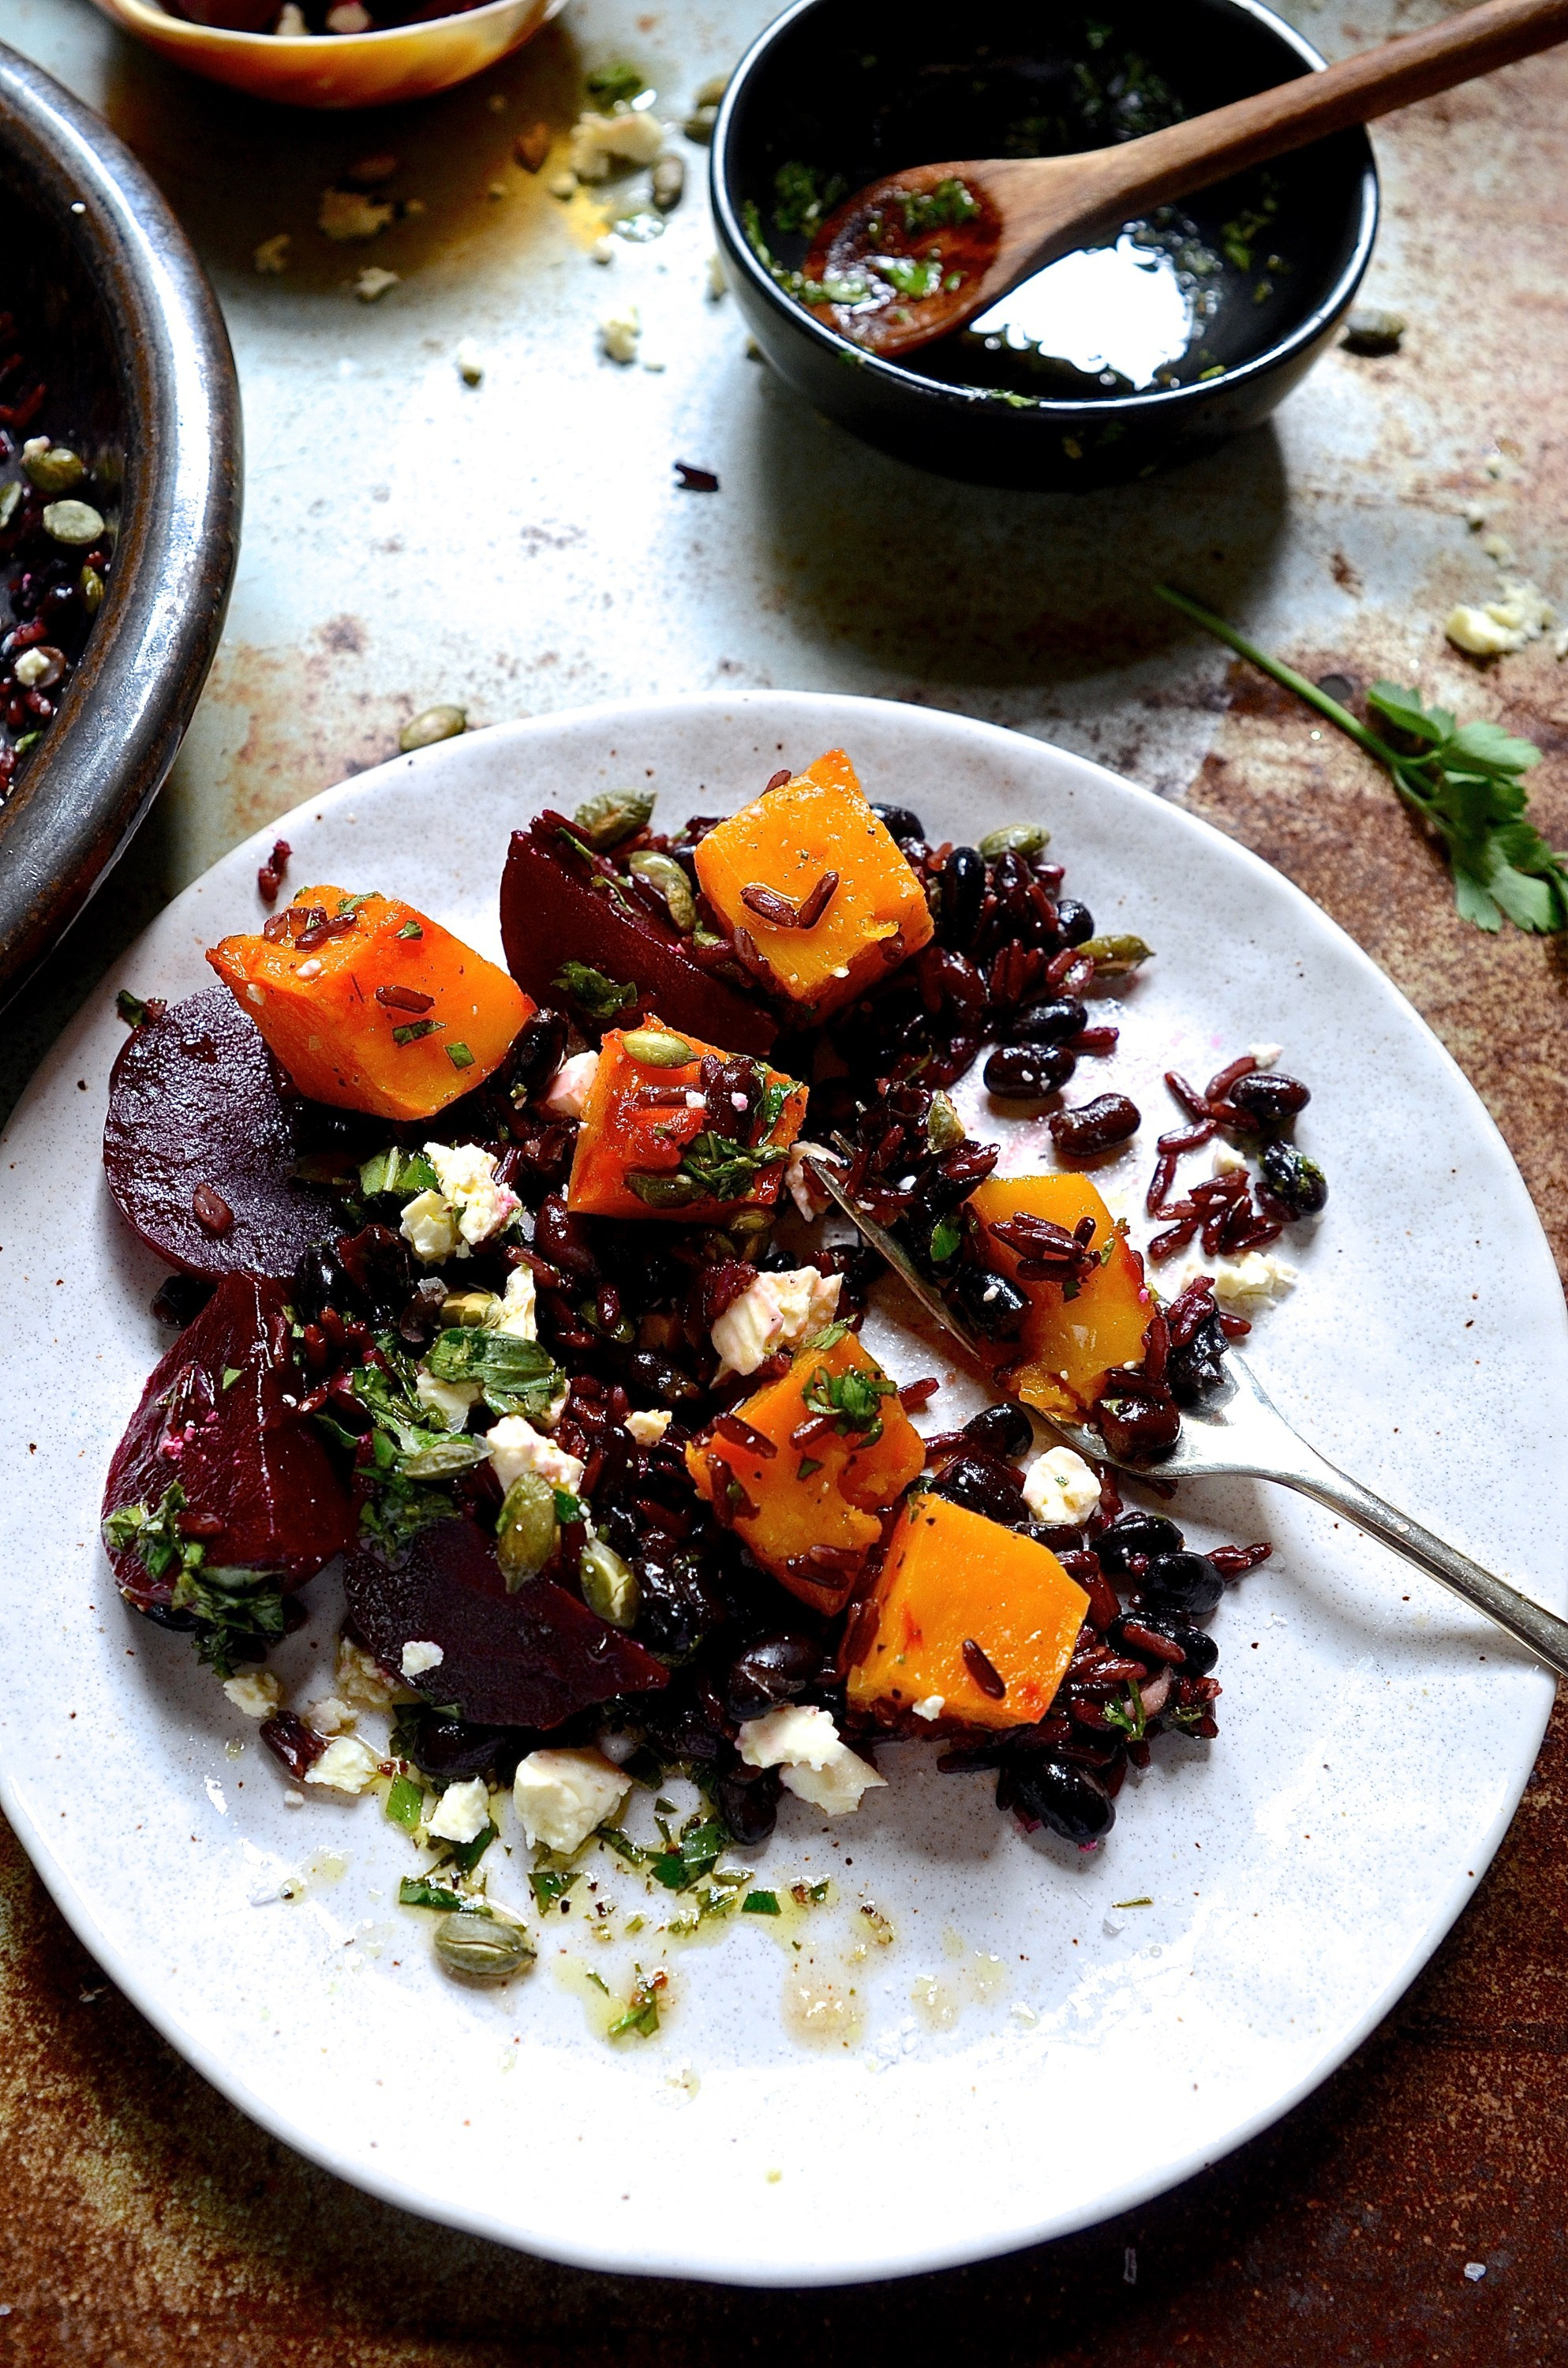 Black rice Tagged | Bibby's Kitchen @ 36 | A food blog sharing recipes, stories and travel